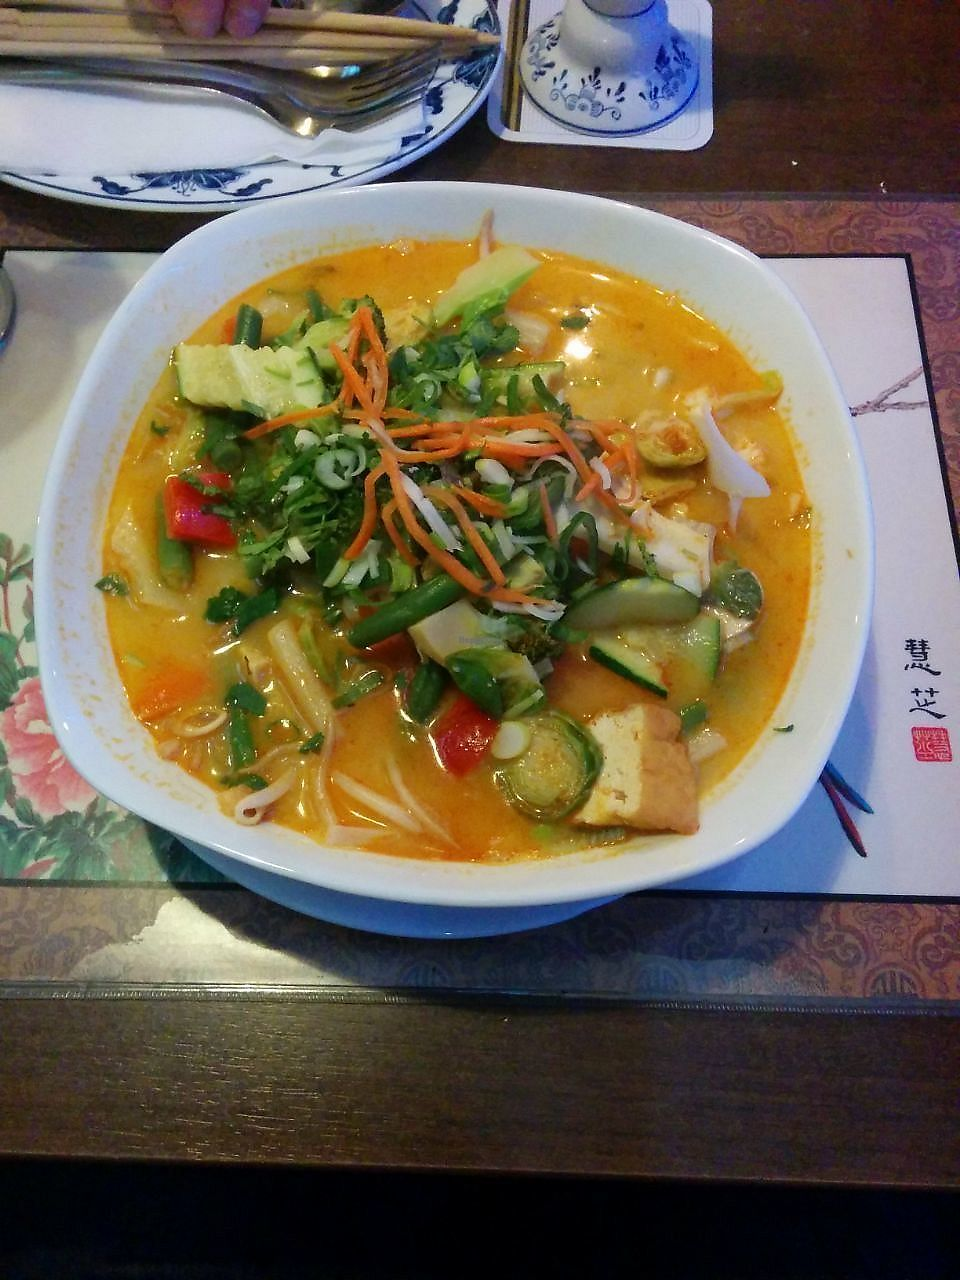 "Photo of Chay Viet  by <a href=""/members/profile/FlokiTheCat"">FlokiTheCat</a> <br/>Vegan pho with coconut milk <br/> December 31, 2017  - <a href='/contact/abuse/image/57164/341280'>Report</a>"